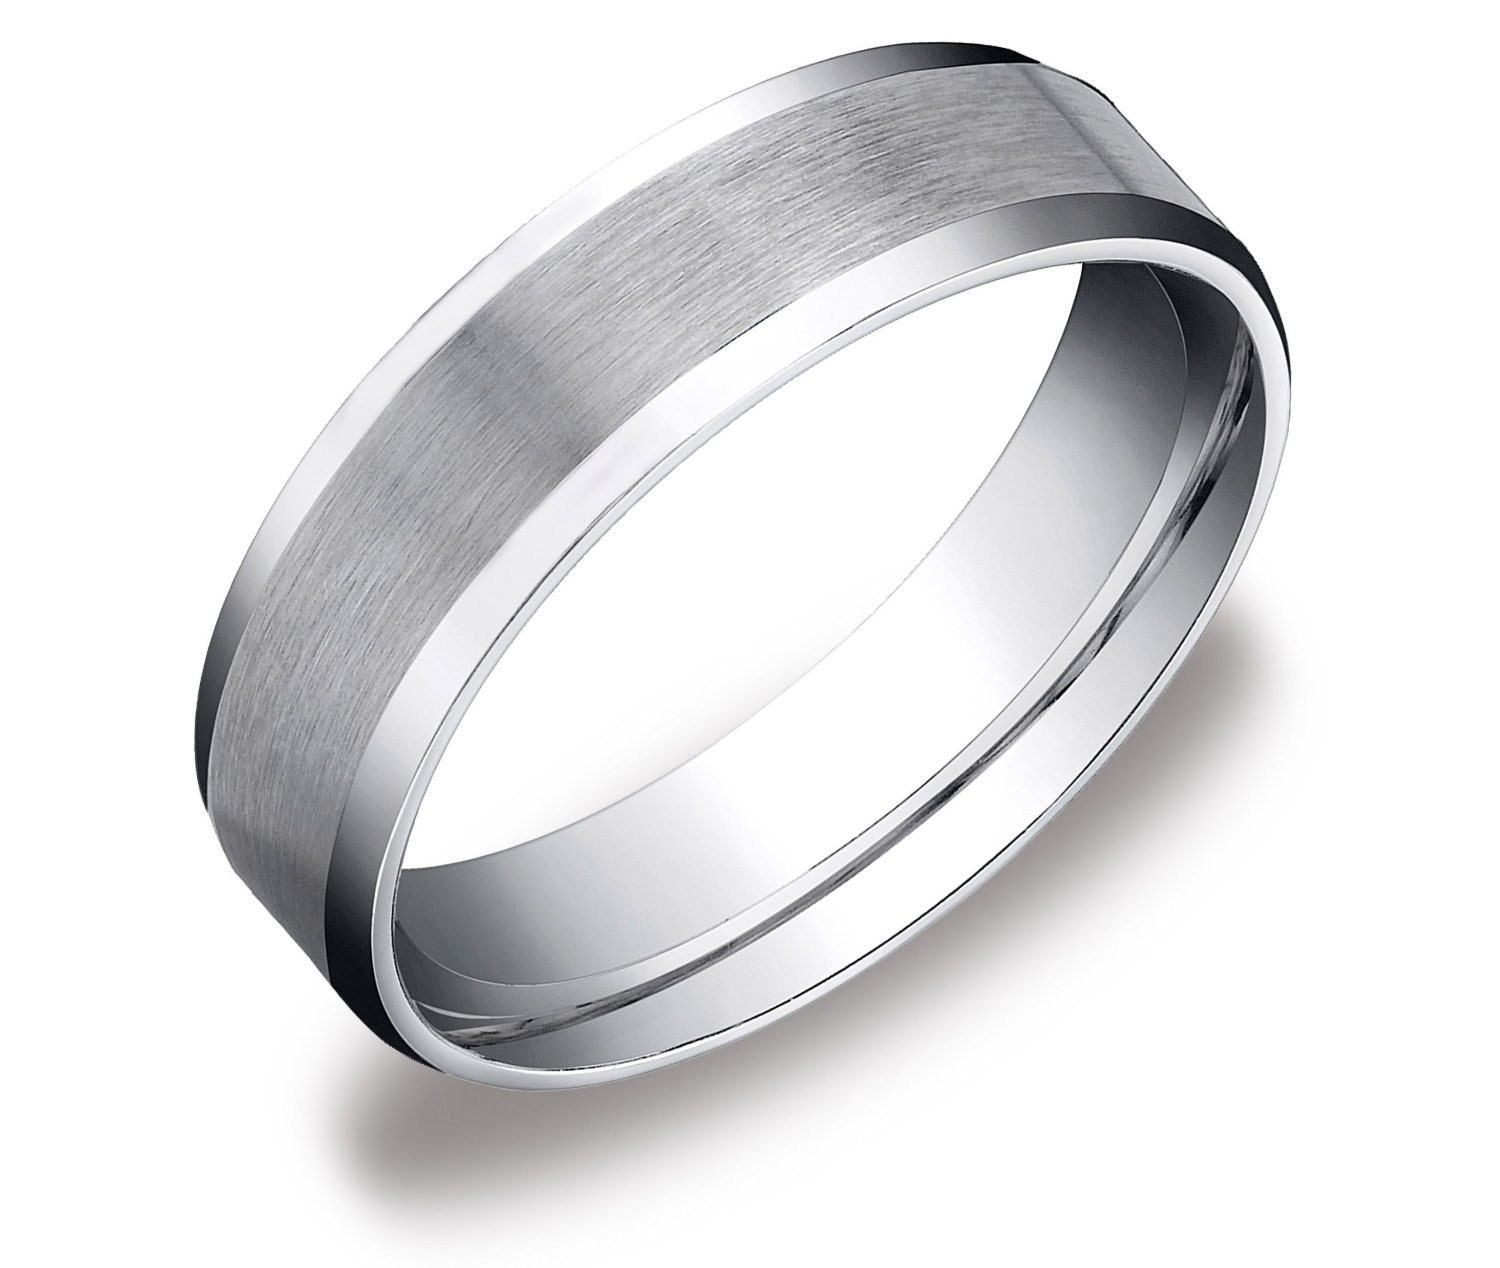 mens plain men ring gold white odiz by rounded rings wedding design platinum ny band bands matte shiree products s